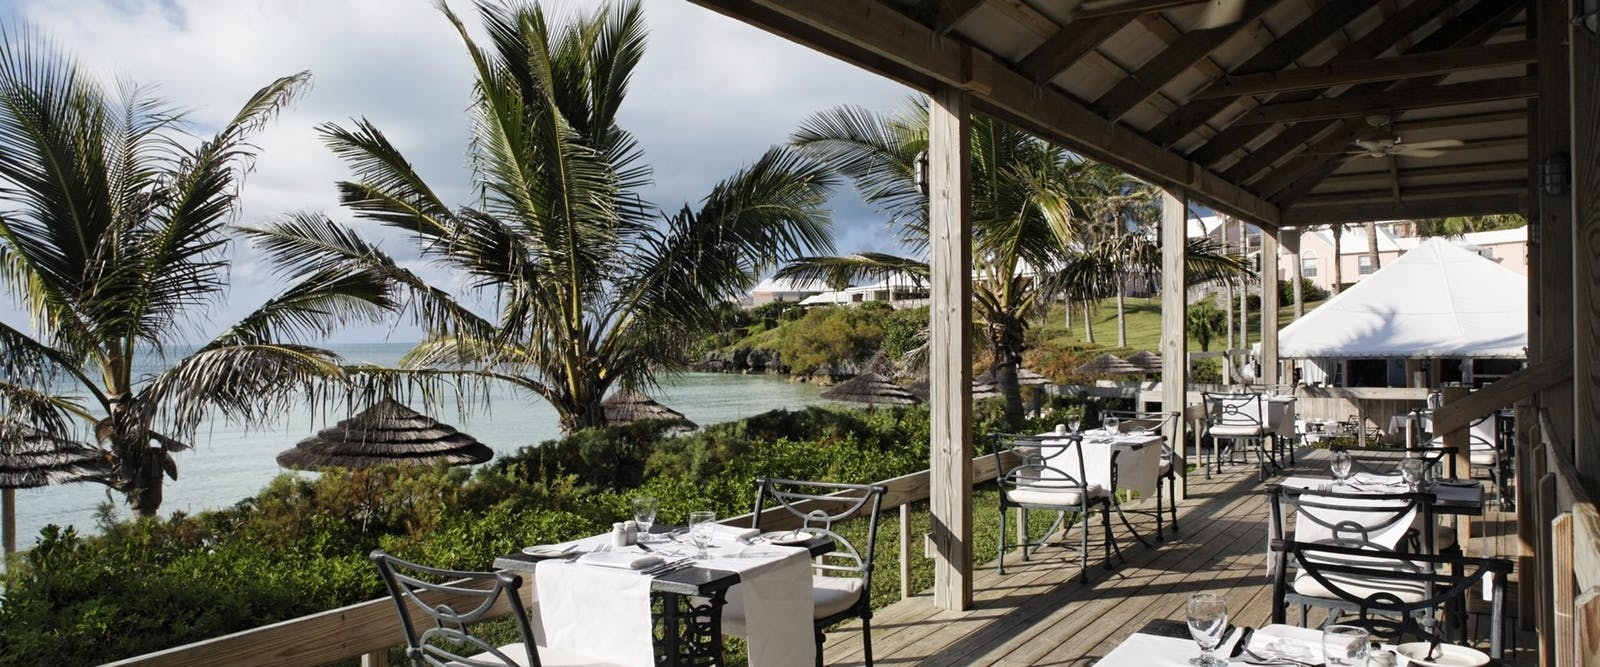 Breezes Restaurant at Cambridge Beaches Resort & Spa, Bermuda